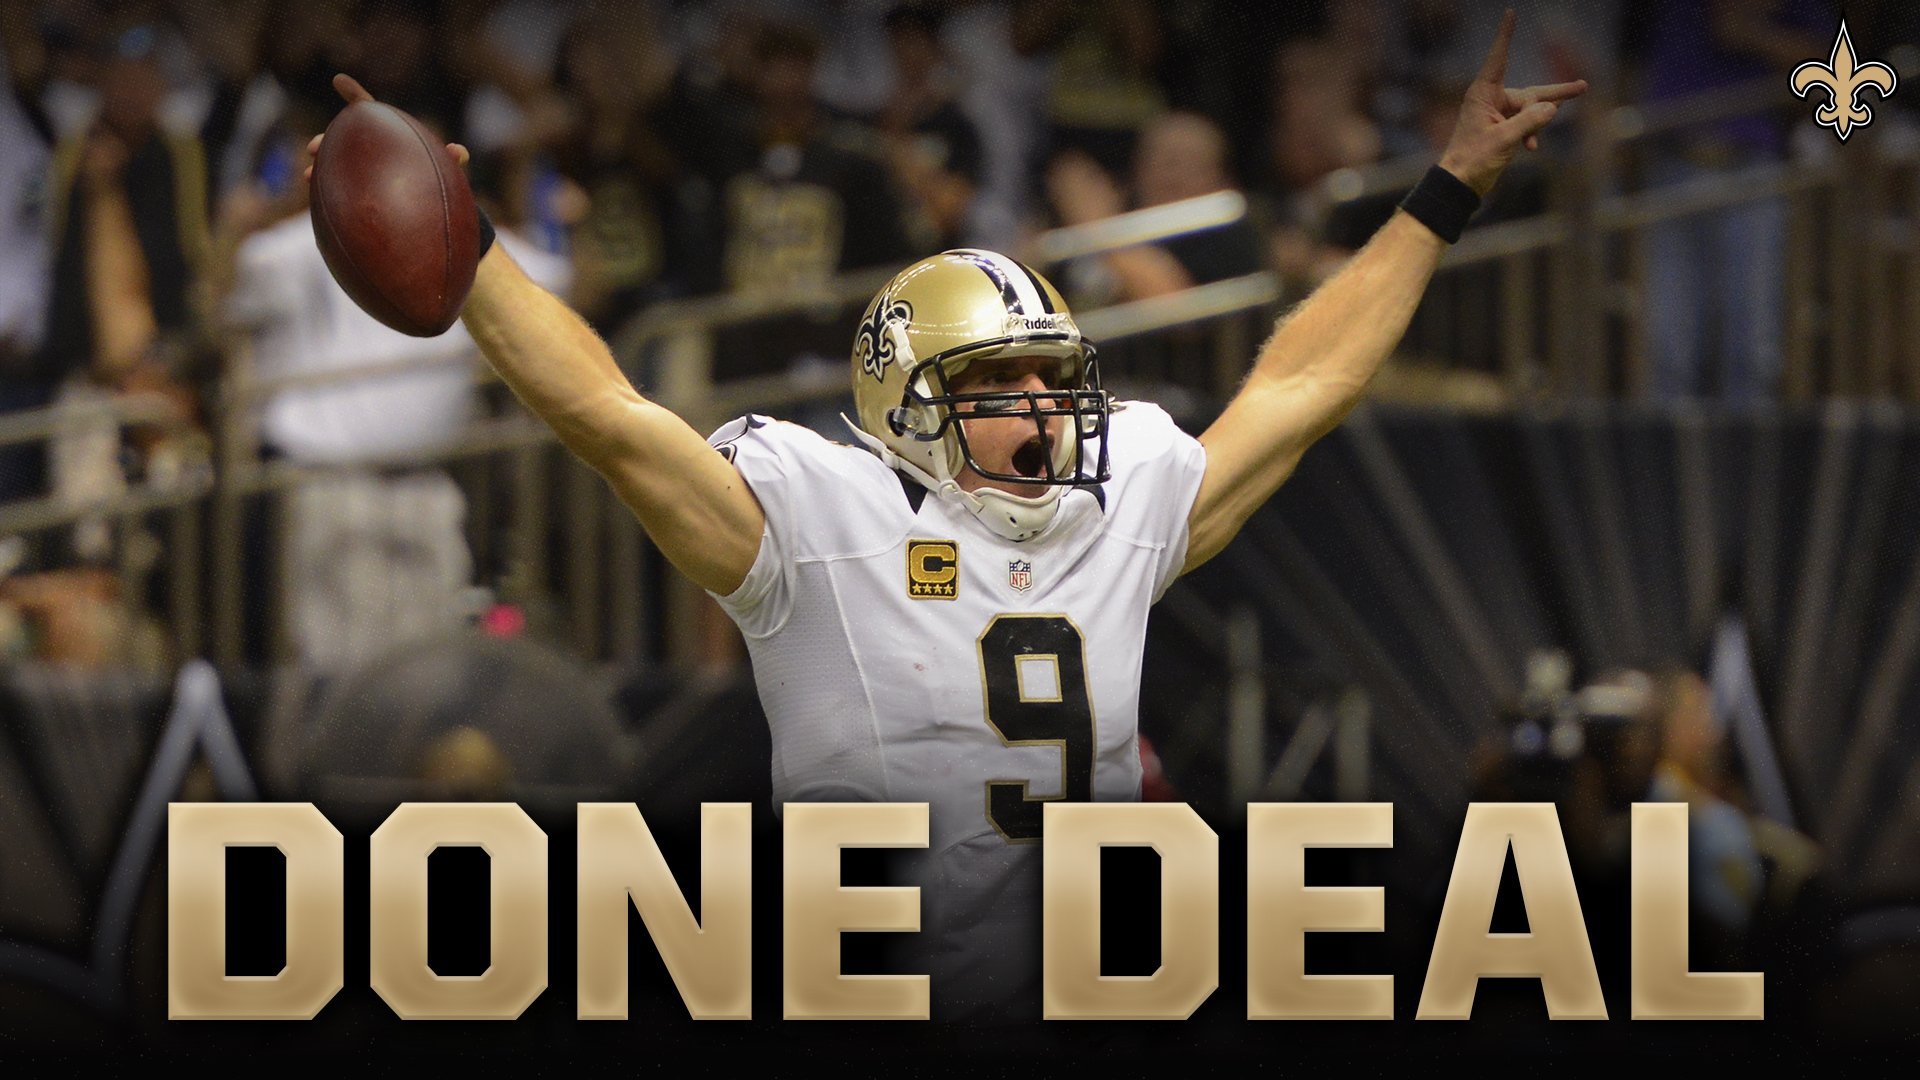 Saints, Drew Brees will continue their tremendous run together https://t.co/ctbIT5swgw by @JohnDeShazier #Saints https://t.co/ZsTnhfxLM0